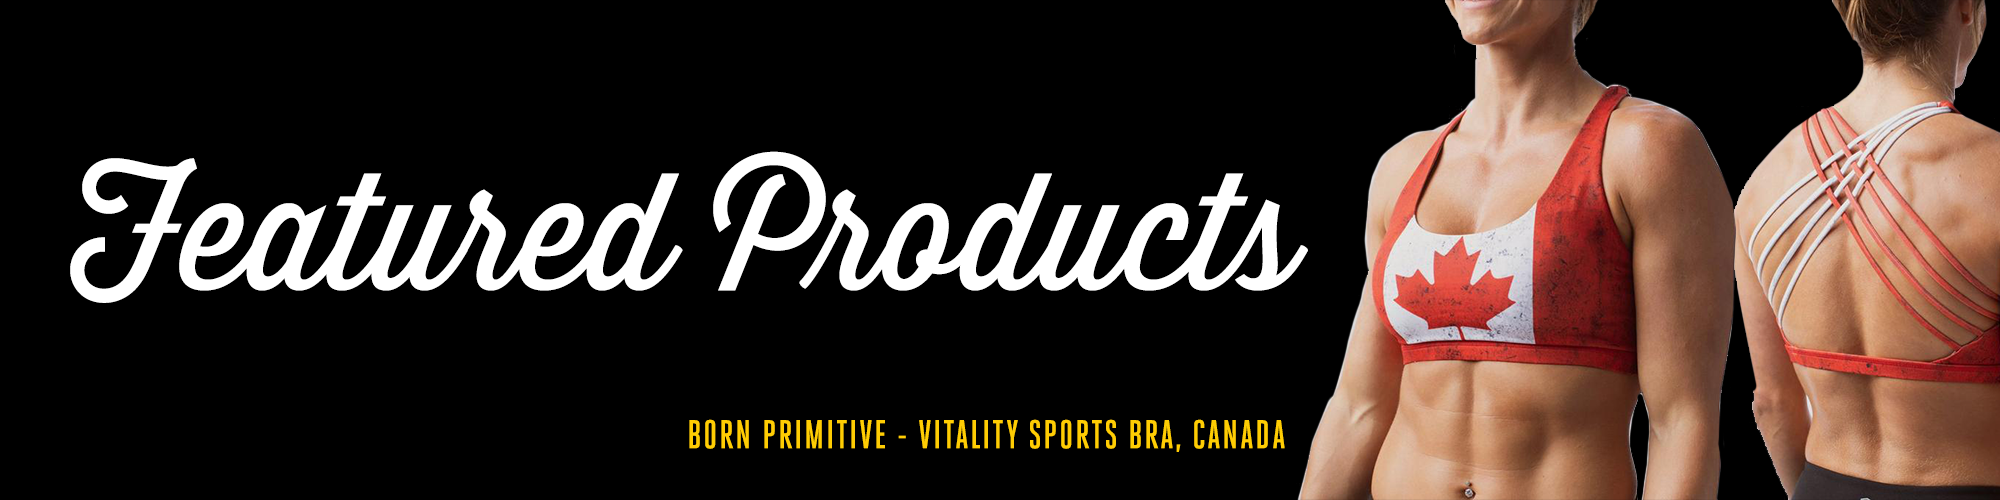 New & Featured Athletic Wear Products for Women in Winter 2022 from Born Primitive Canada at Asskicker Activewear in Barrie, Ontario Canada.